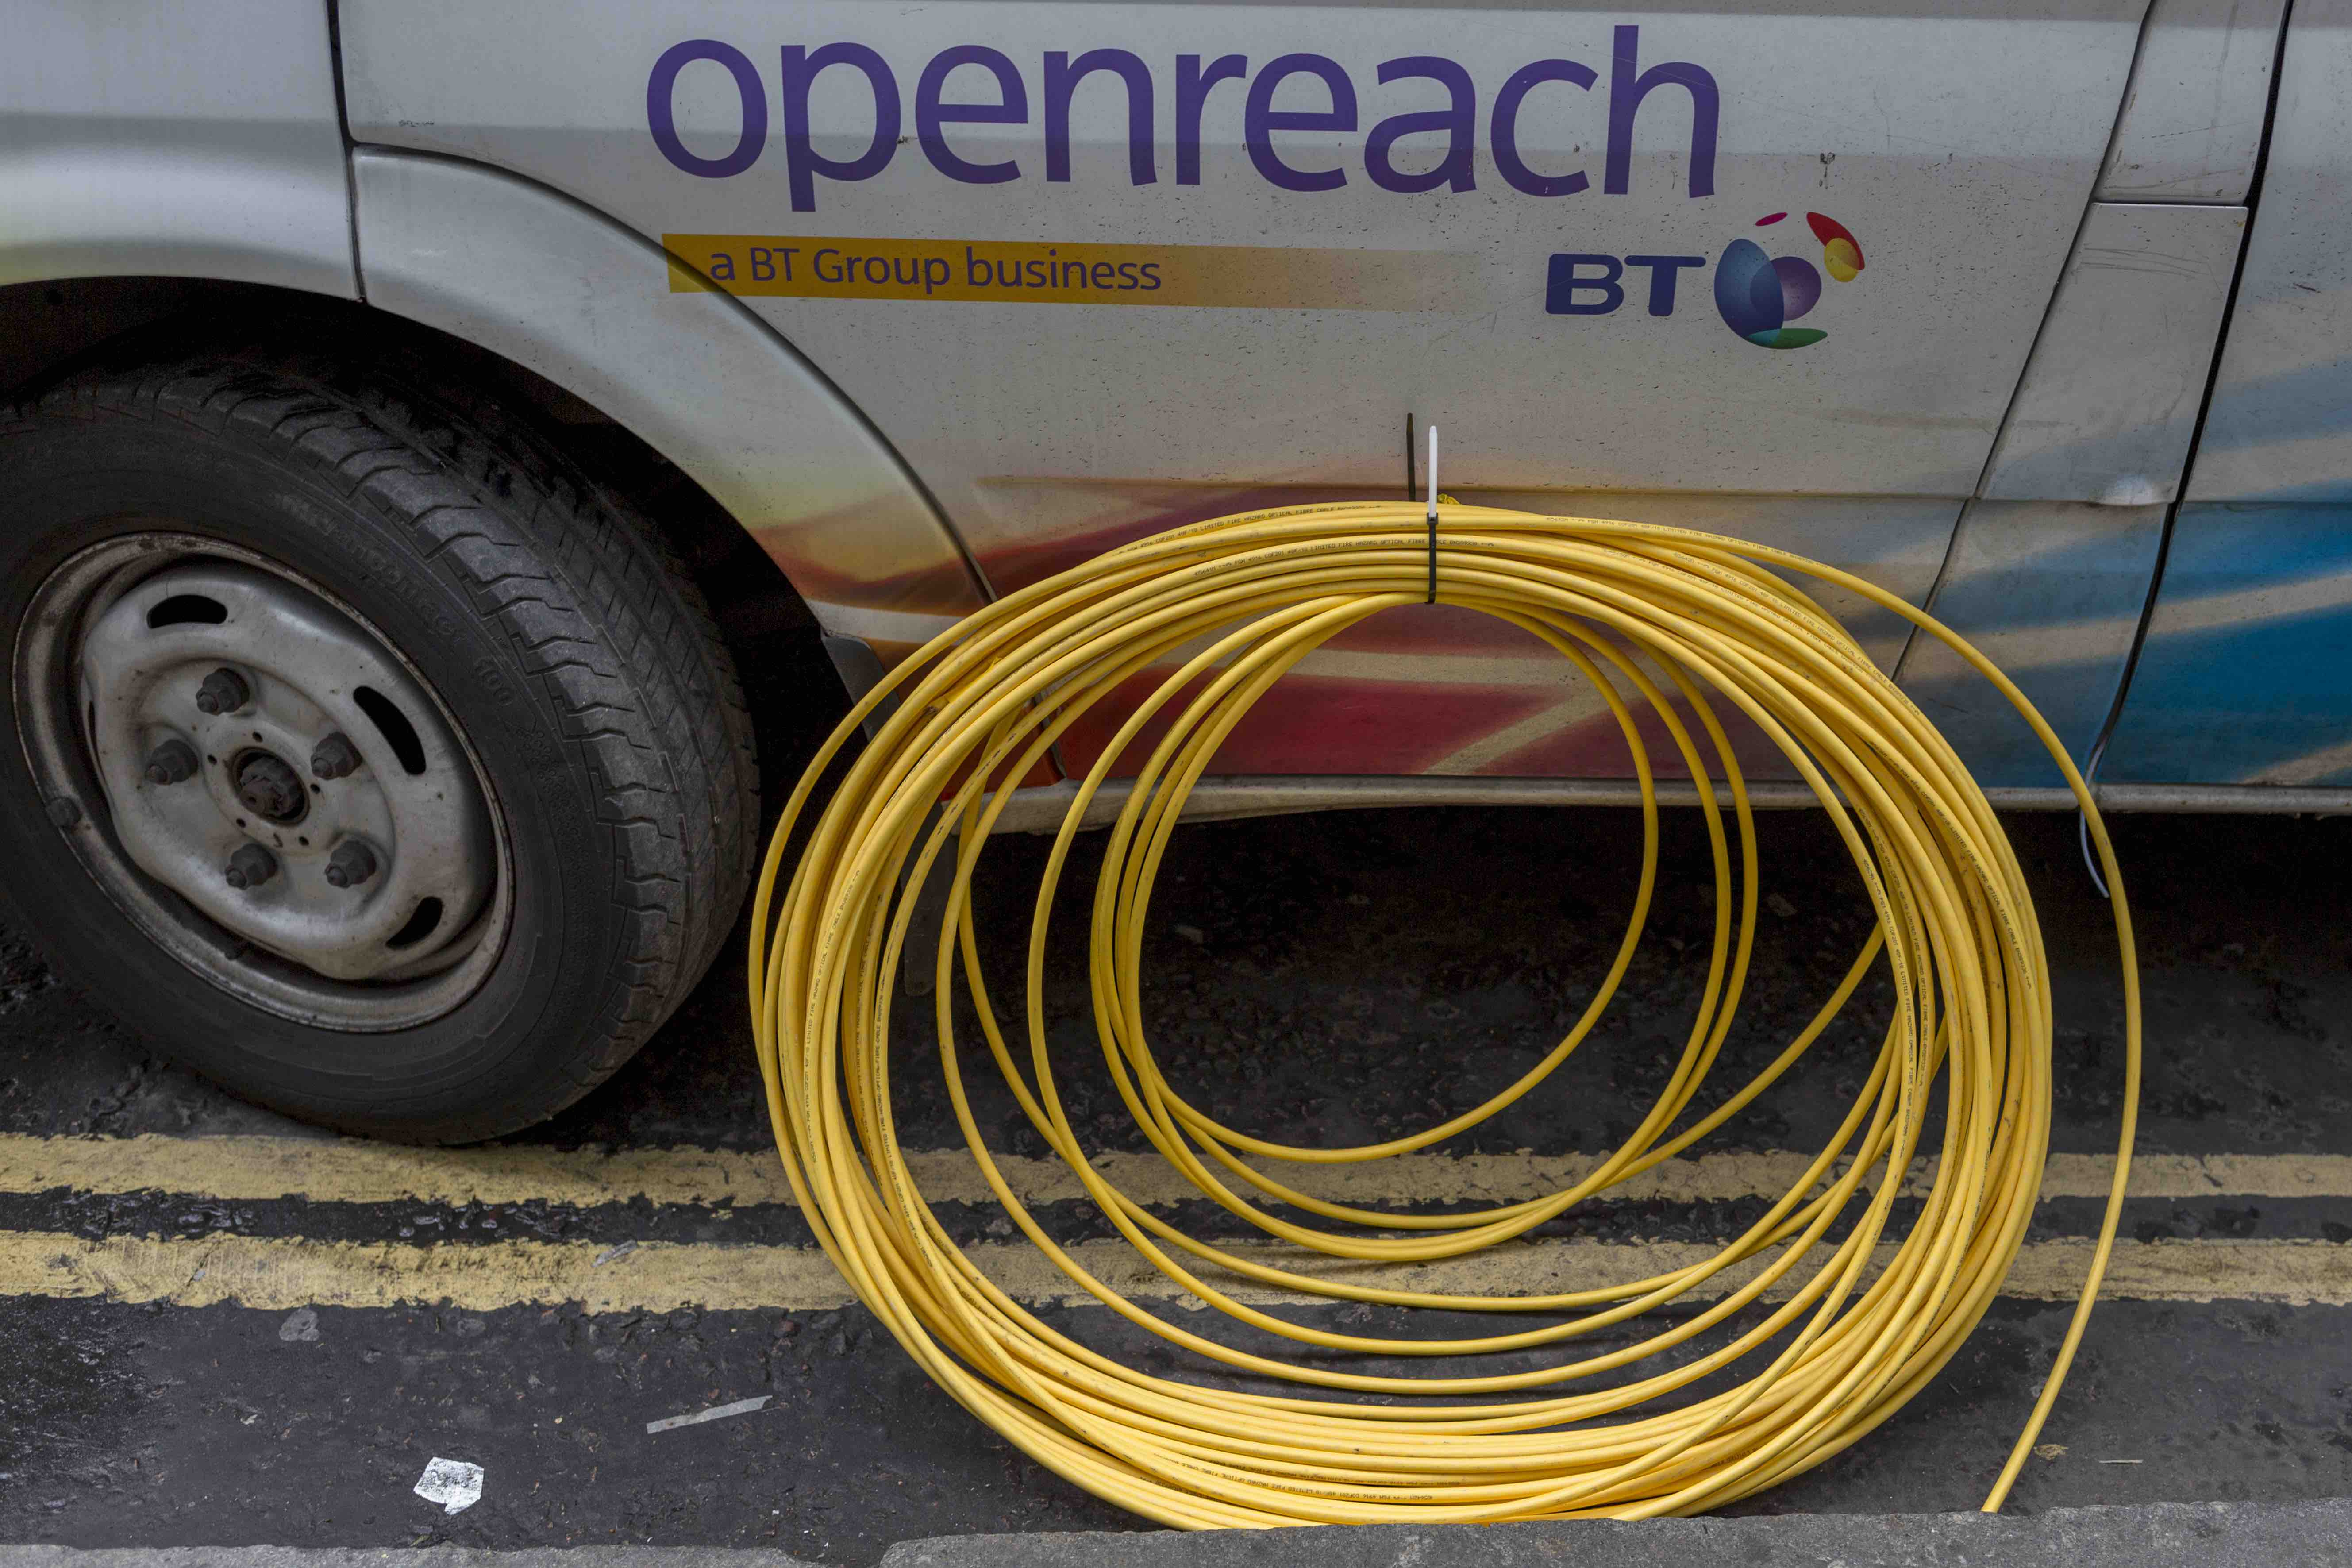 Advertised Broadband Speeds Should Actually Be Realistic Uk Tells Wiring Openreach Box Enlarge Bt Van And A Coil Of Yellow Fibre Cable Awaiting Installation In February 2017 London England